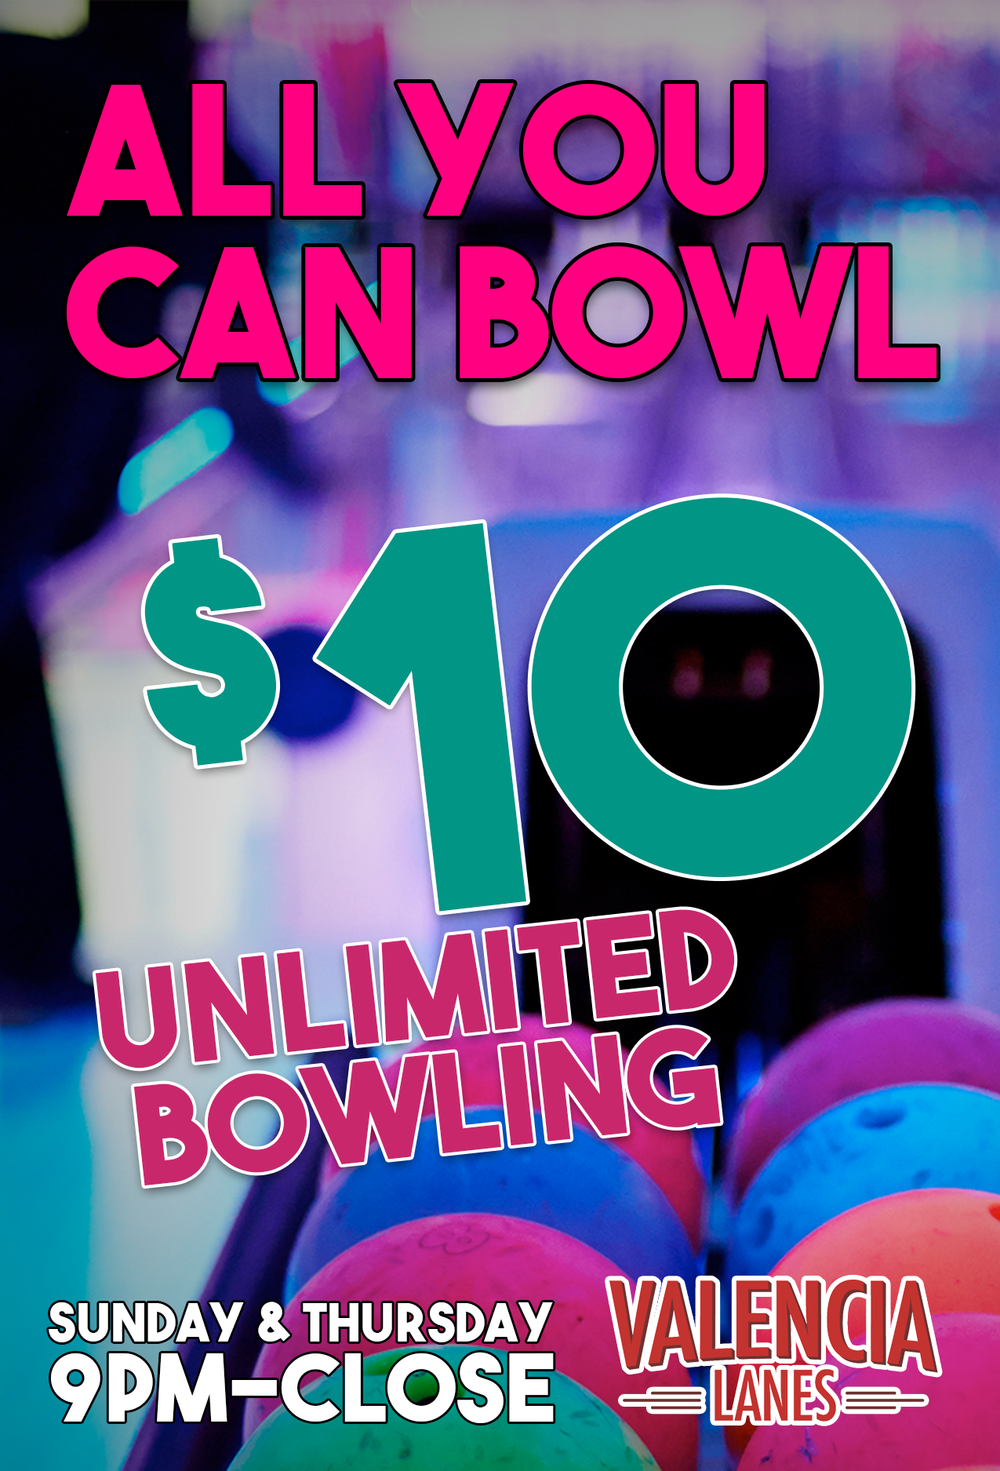 AllYouCanBowl.png